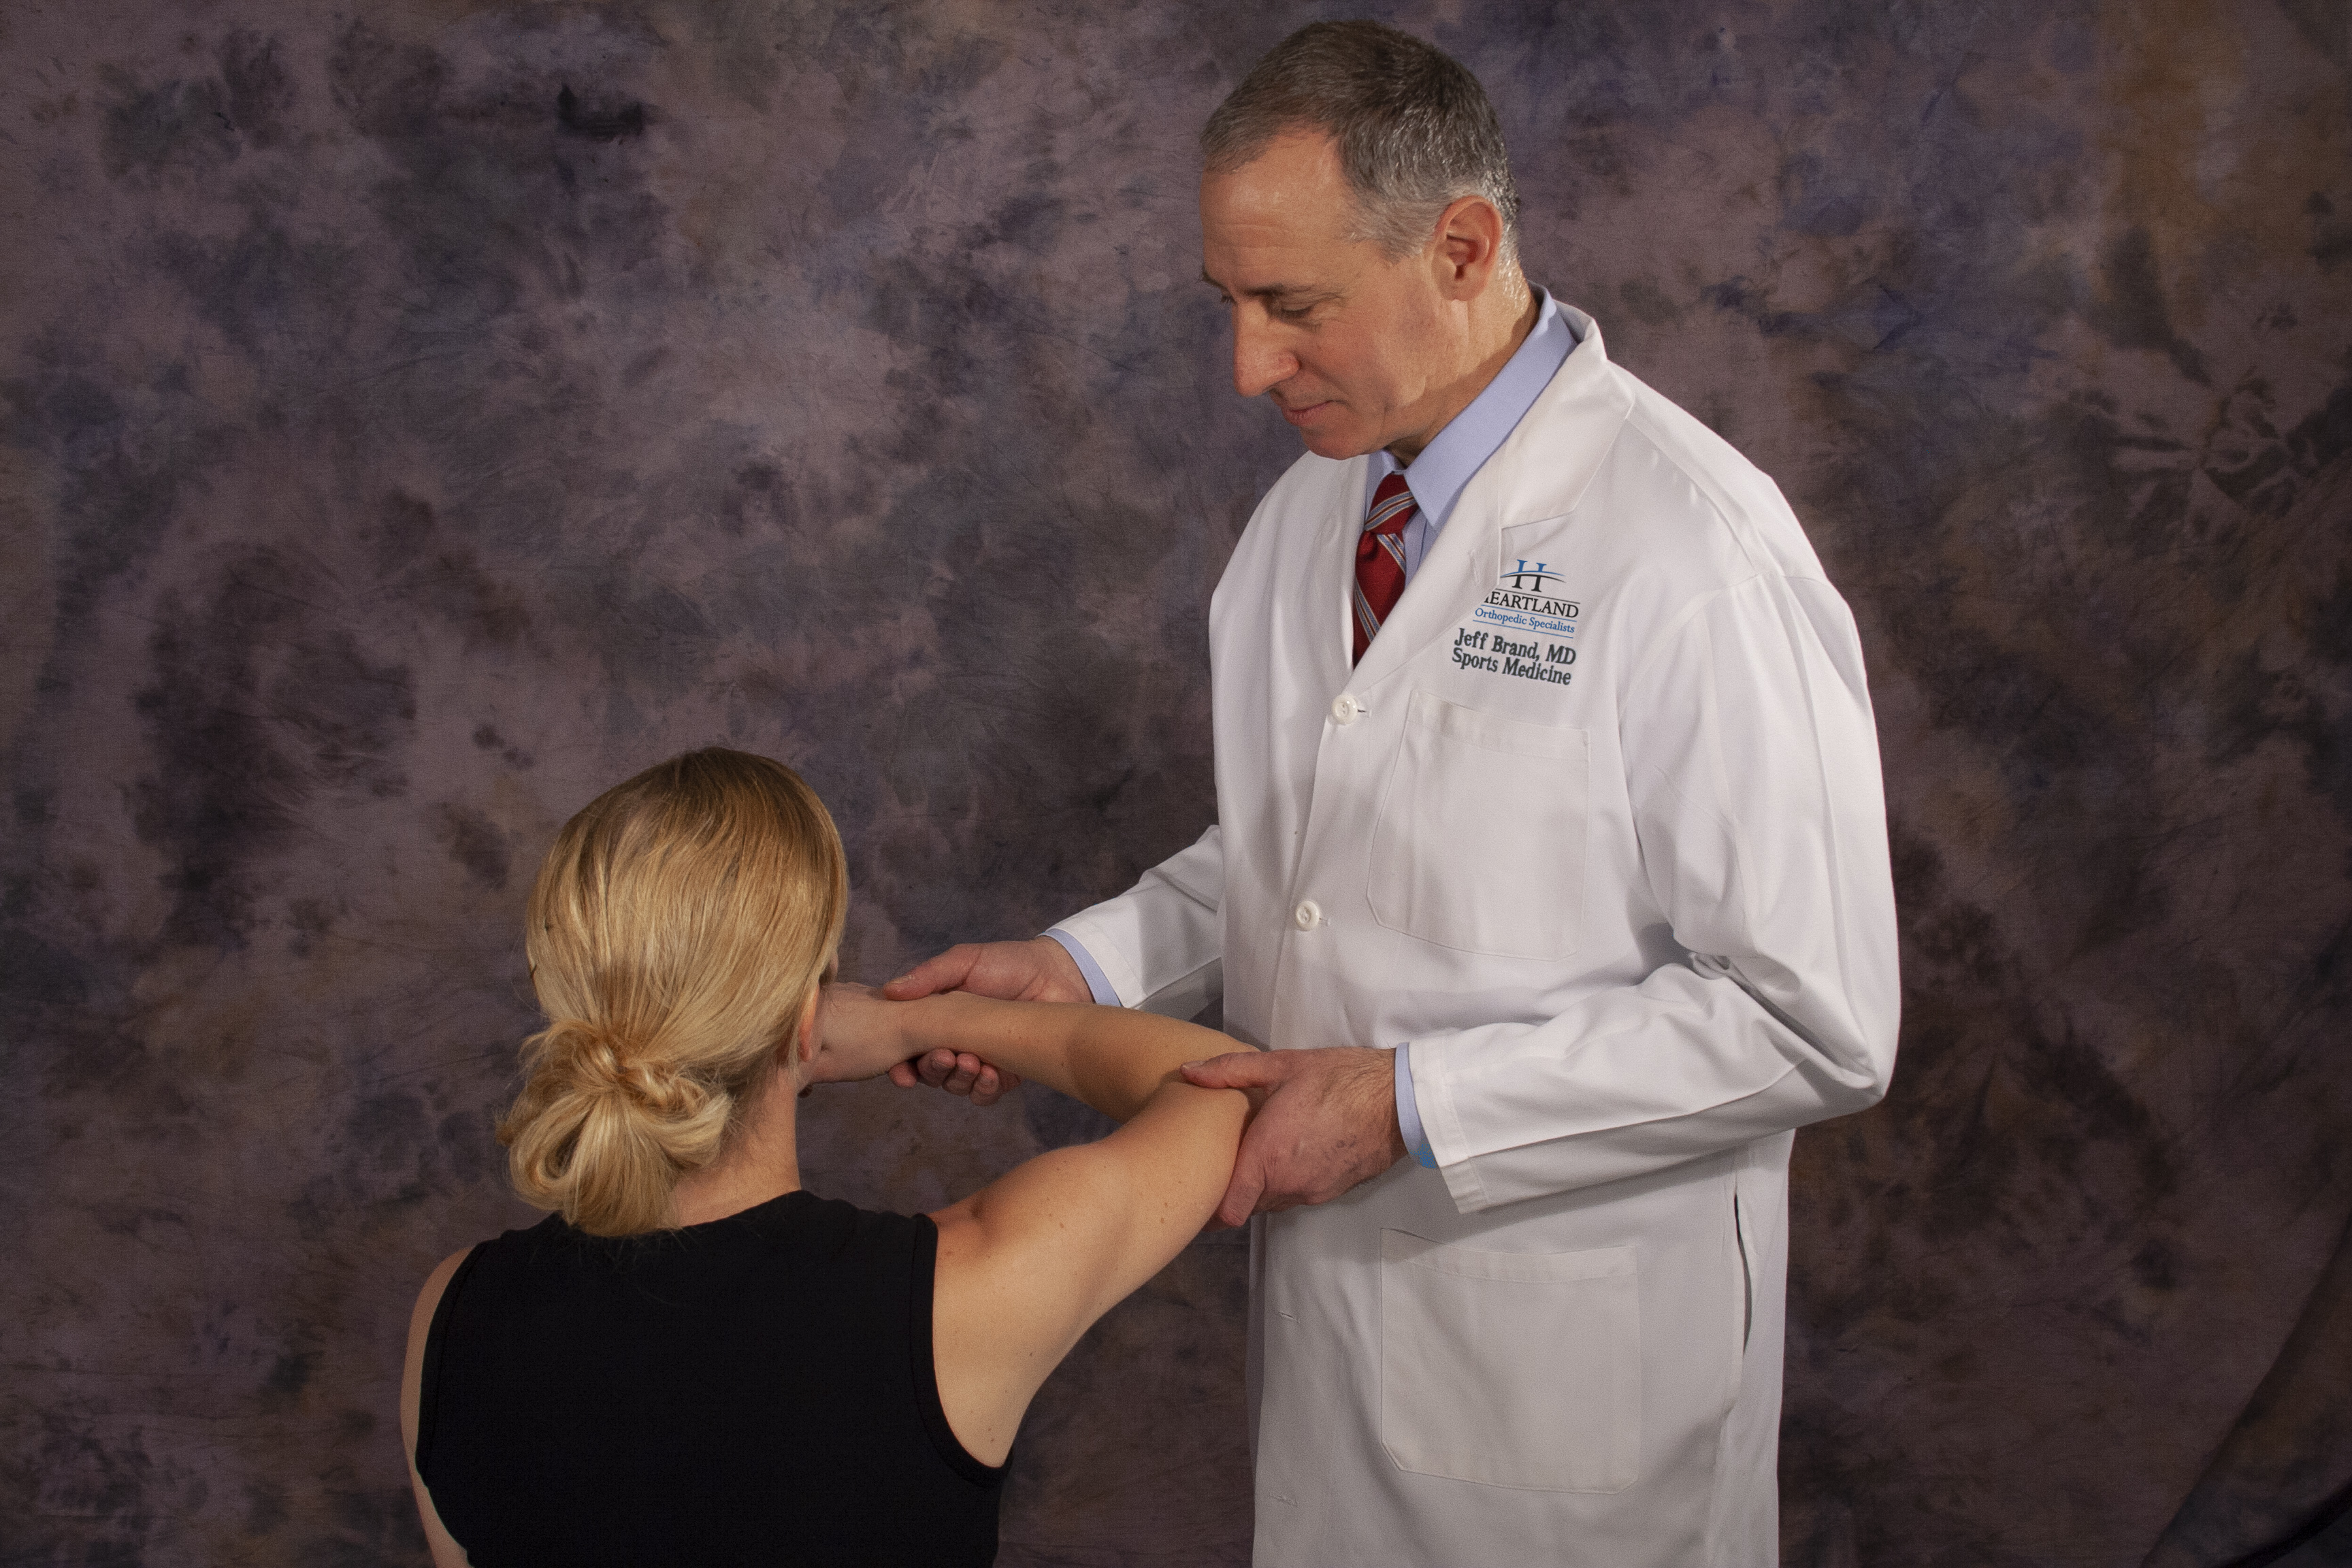 Dr. Brand with a patient